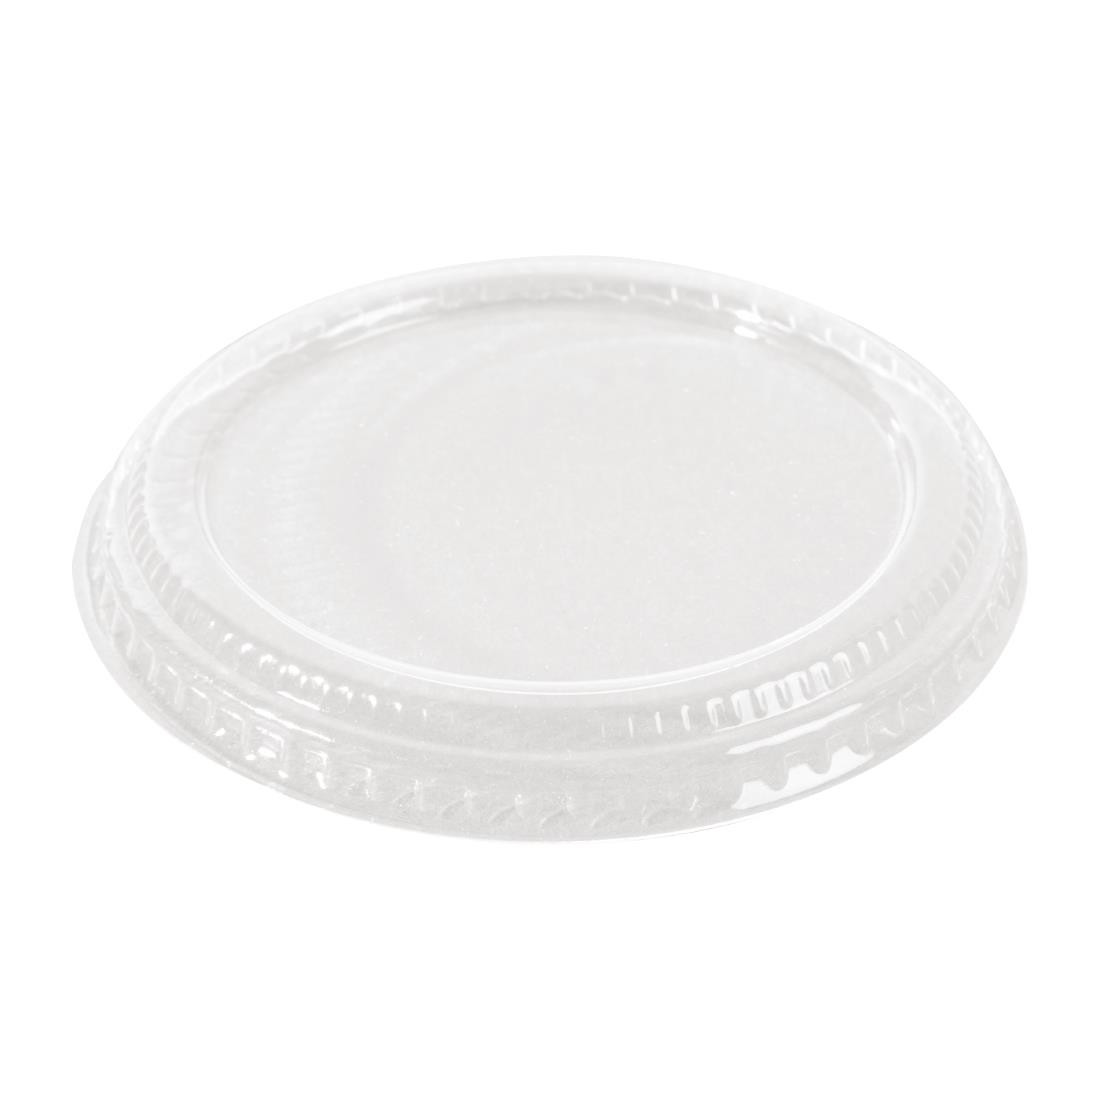 Solia PLA Lid for Round Container 180ml (Pack of 50)